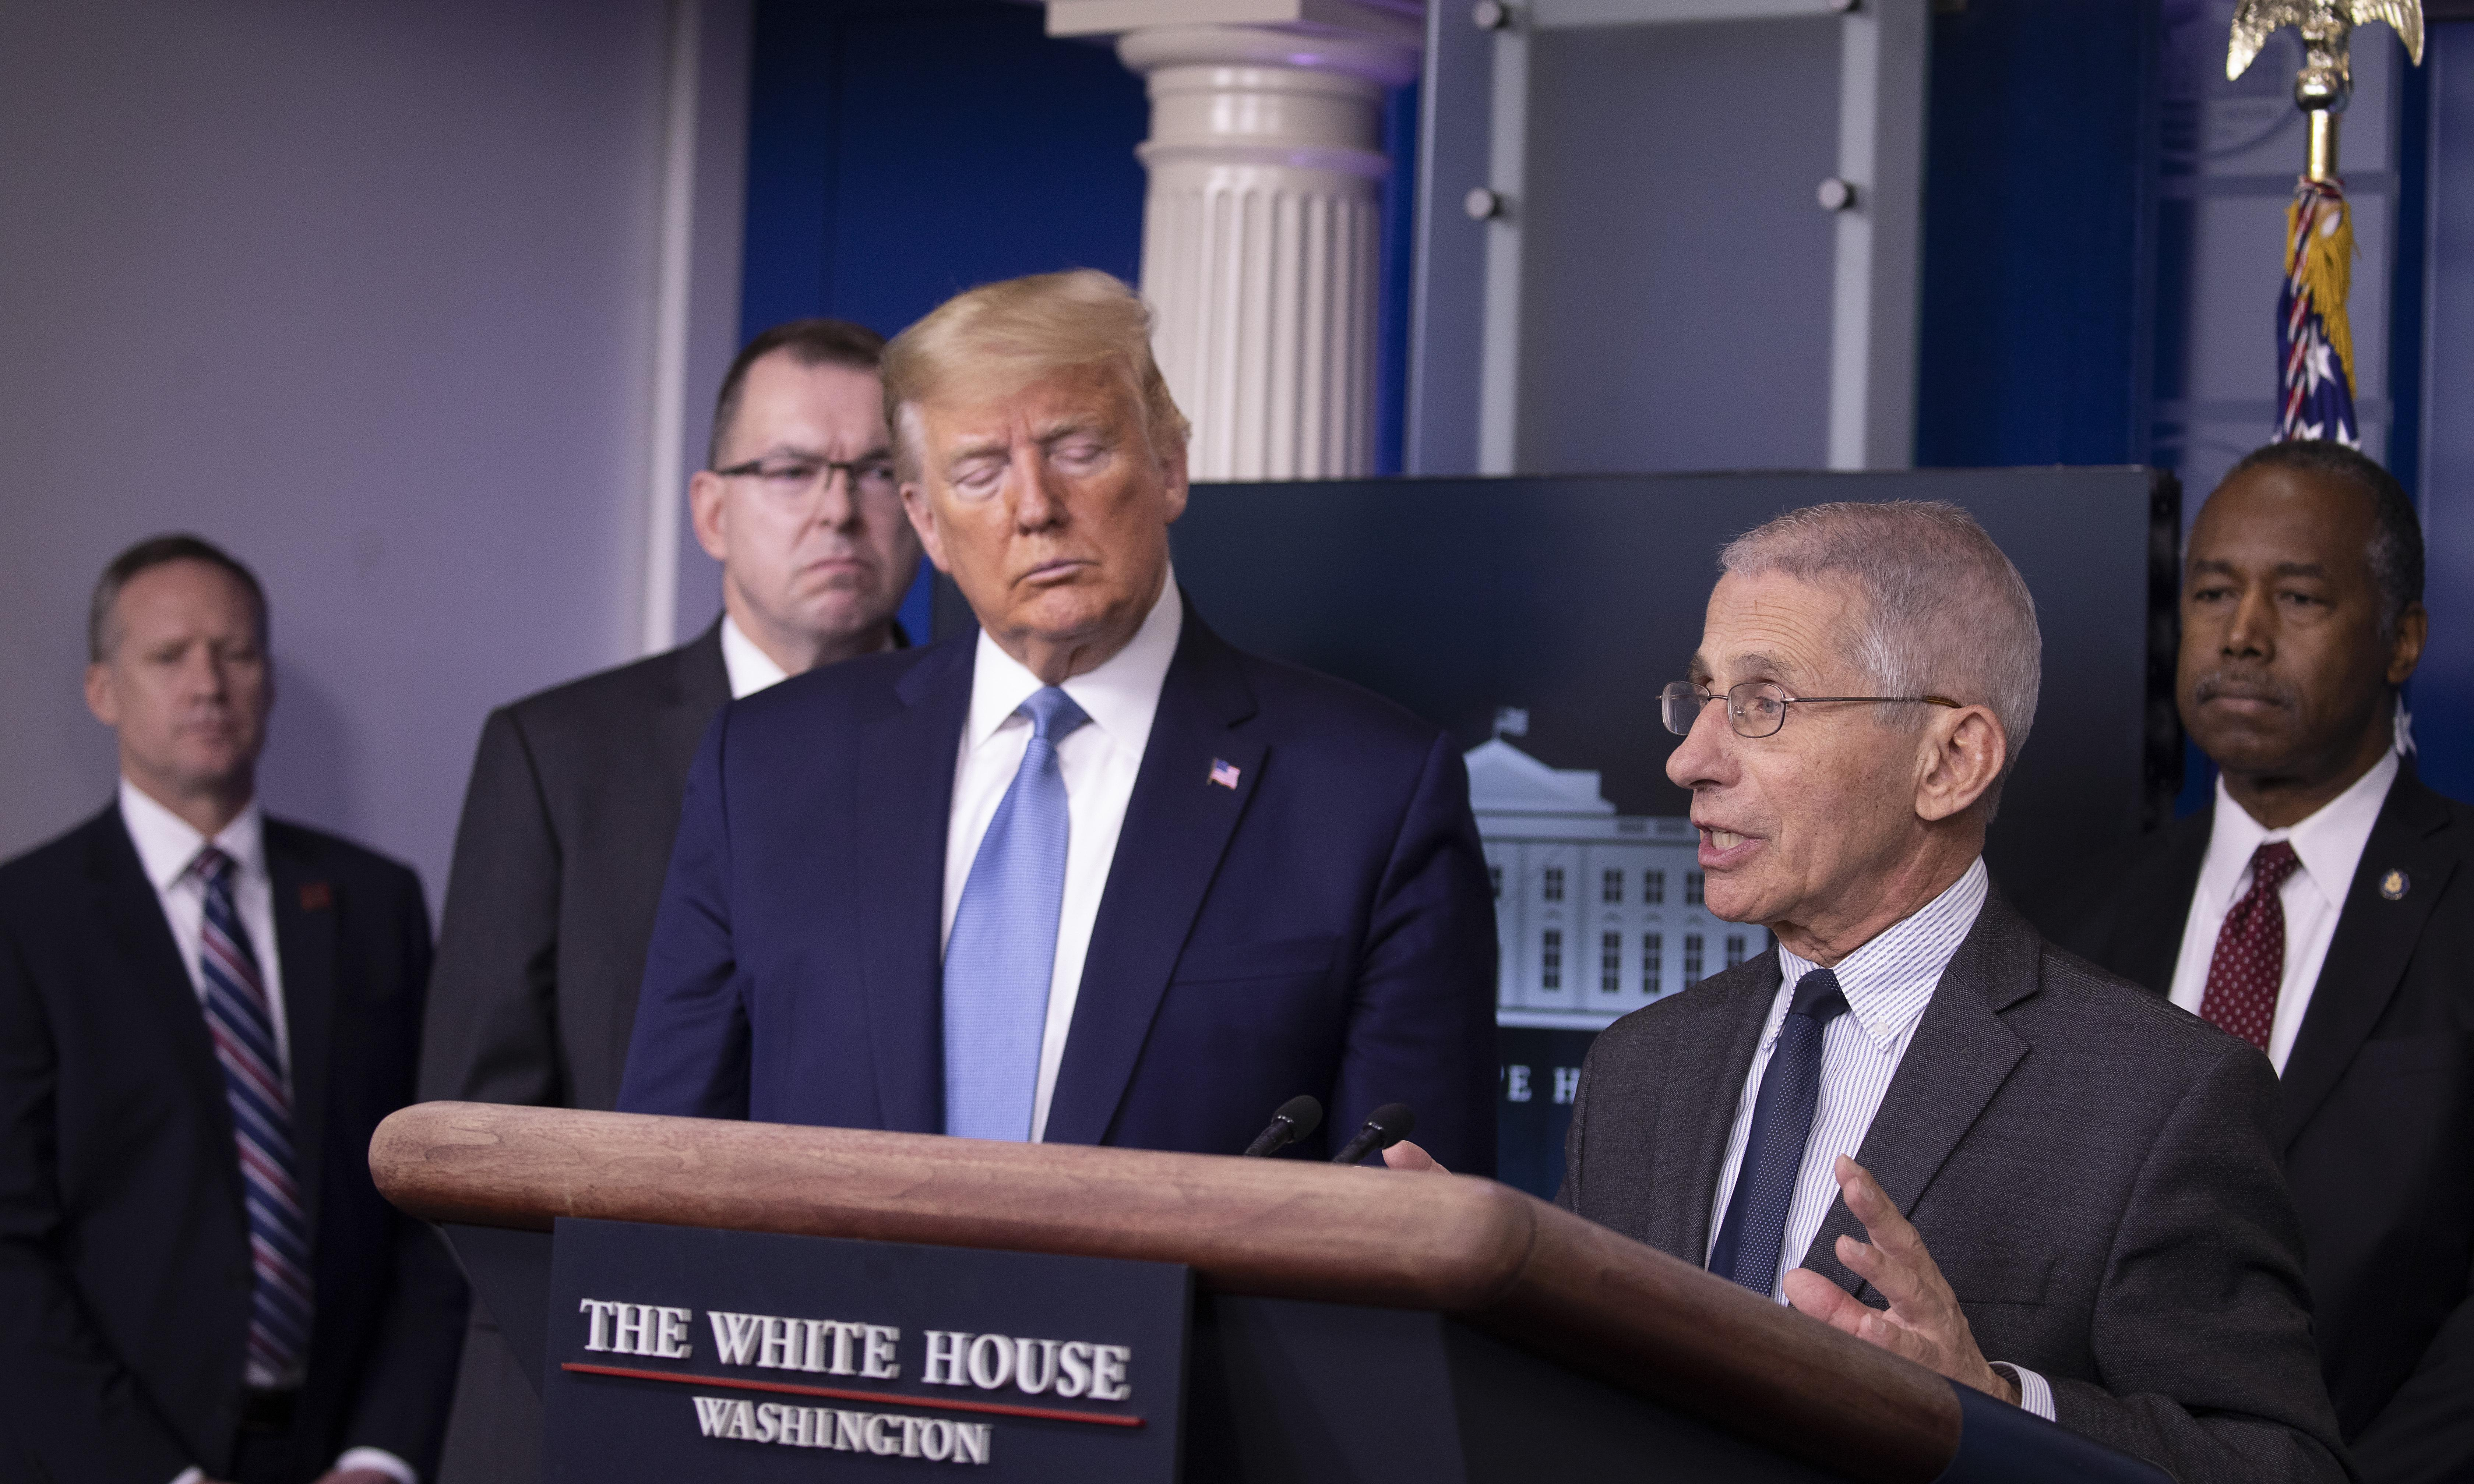 'Where's Fauci?' America panics as doctor absent again from White House briefing